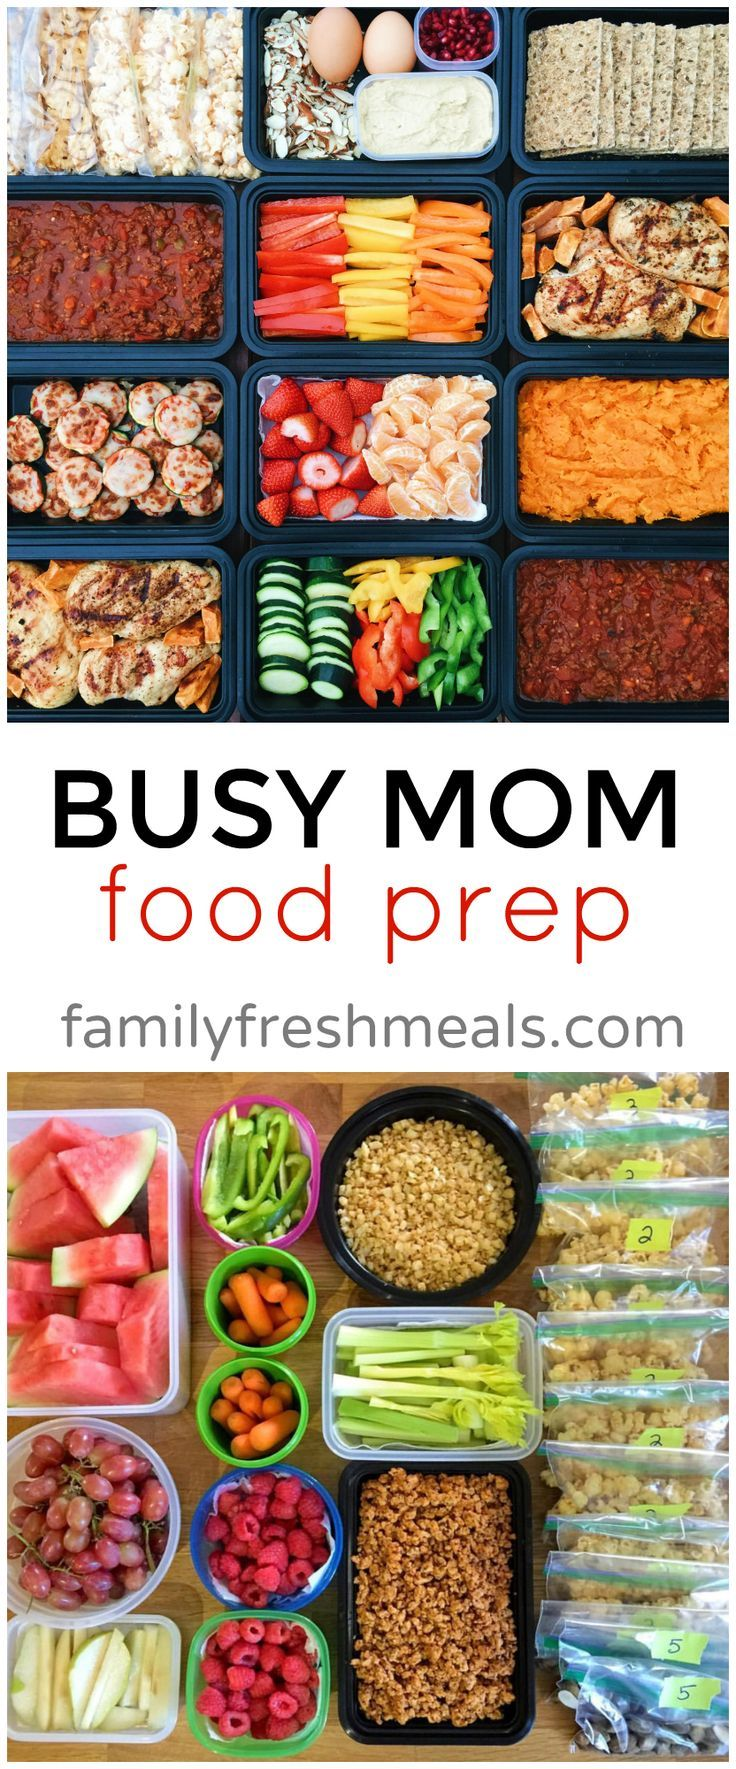 Every busy mom needs to read this EPIC post on how to meal prep for the whole family. So many great tips and hacks for meal planning here!